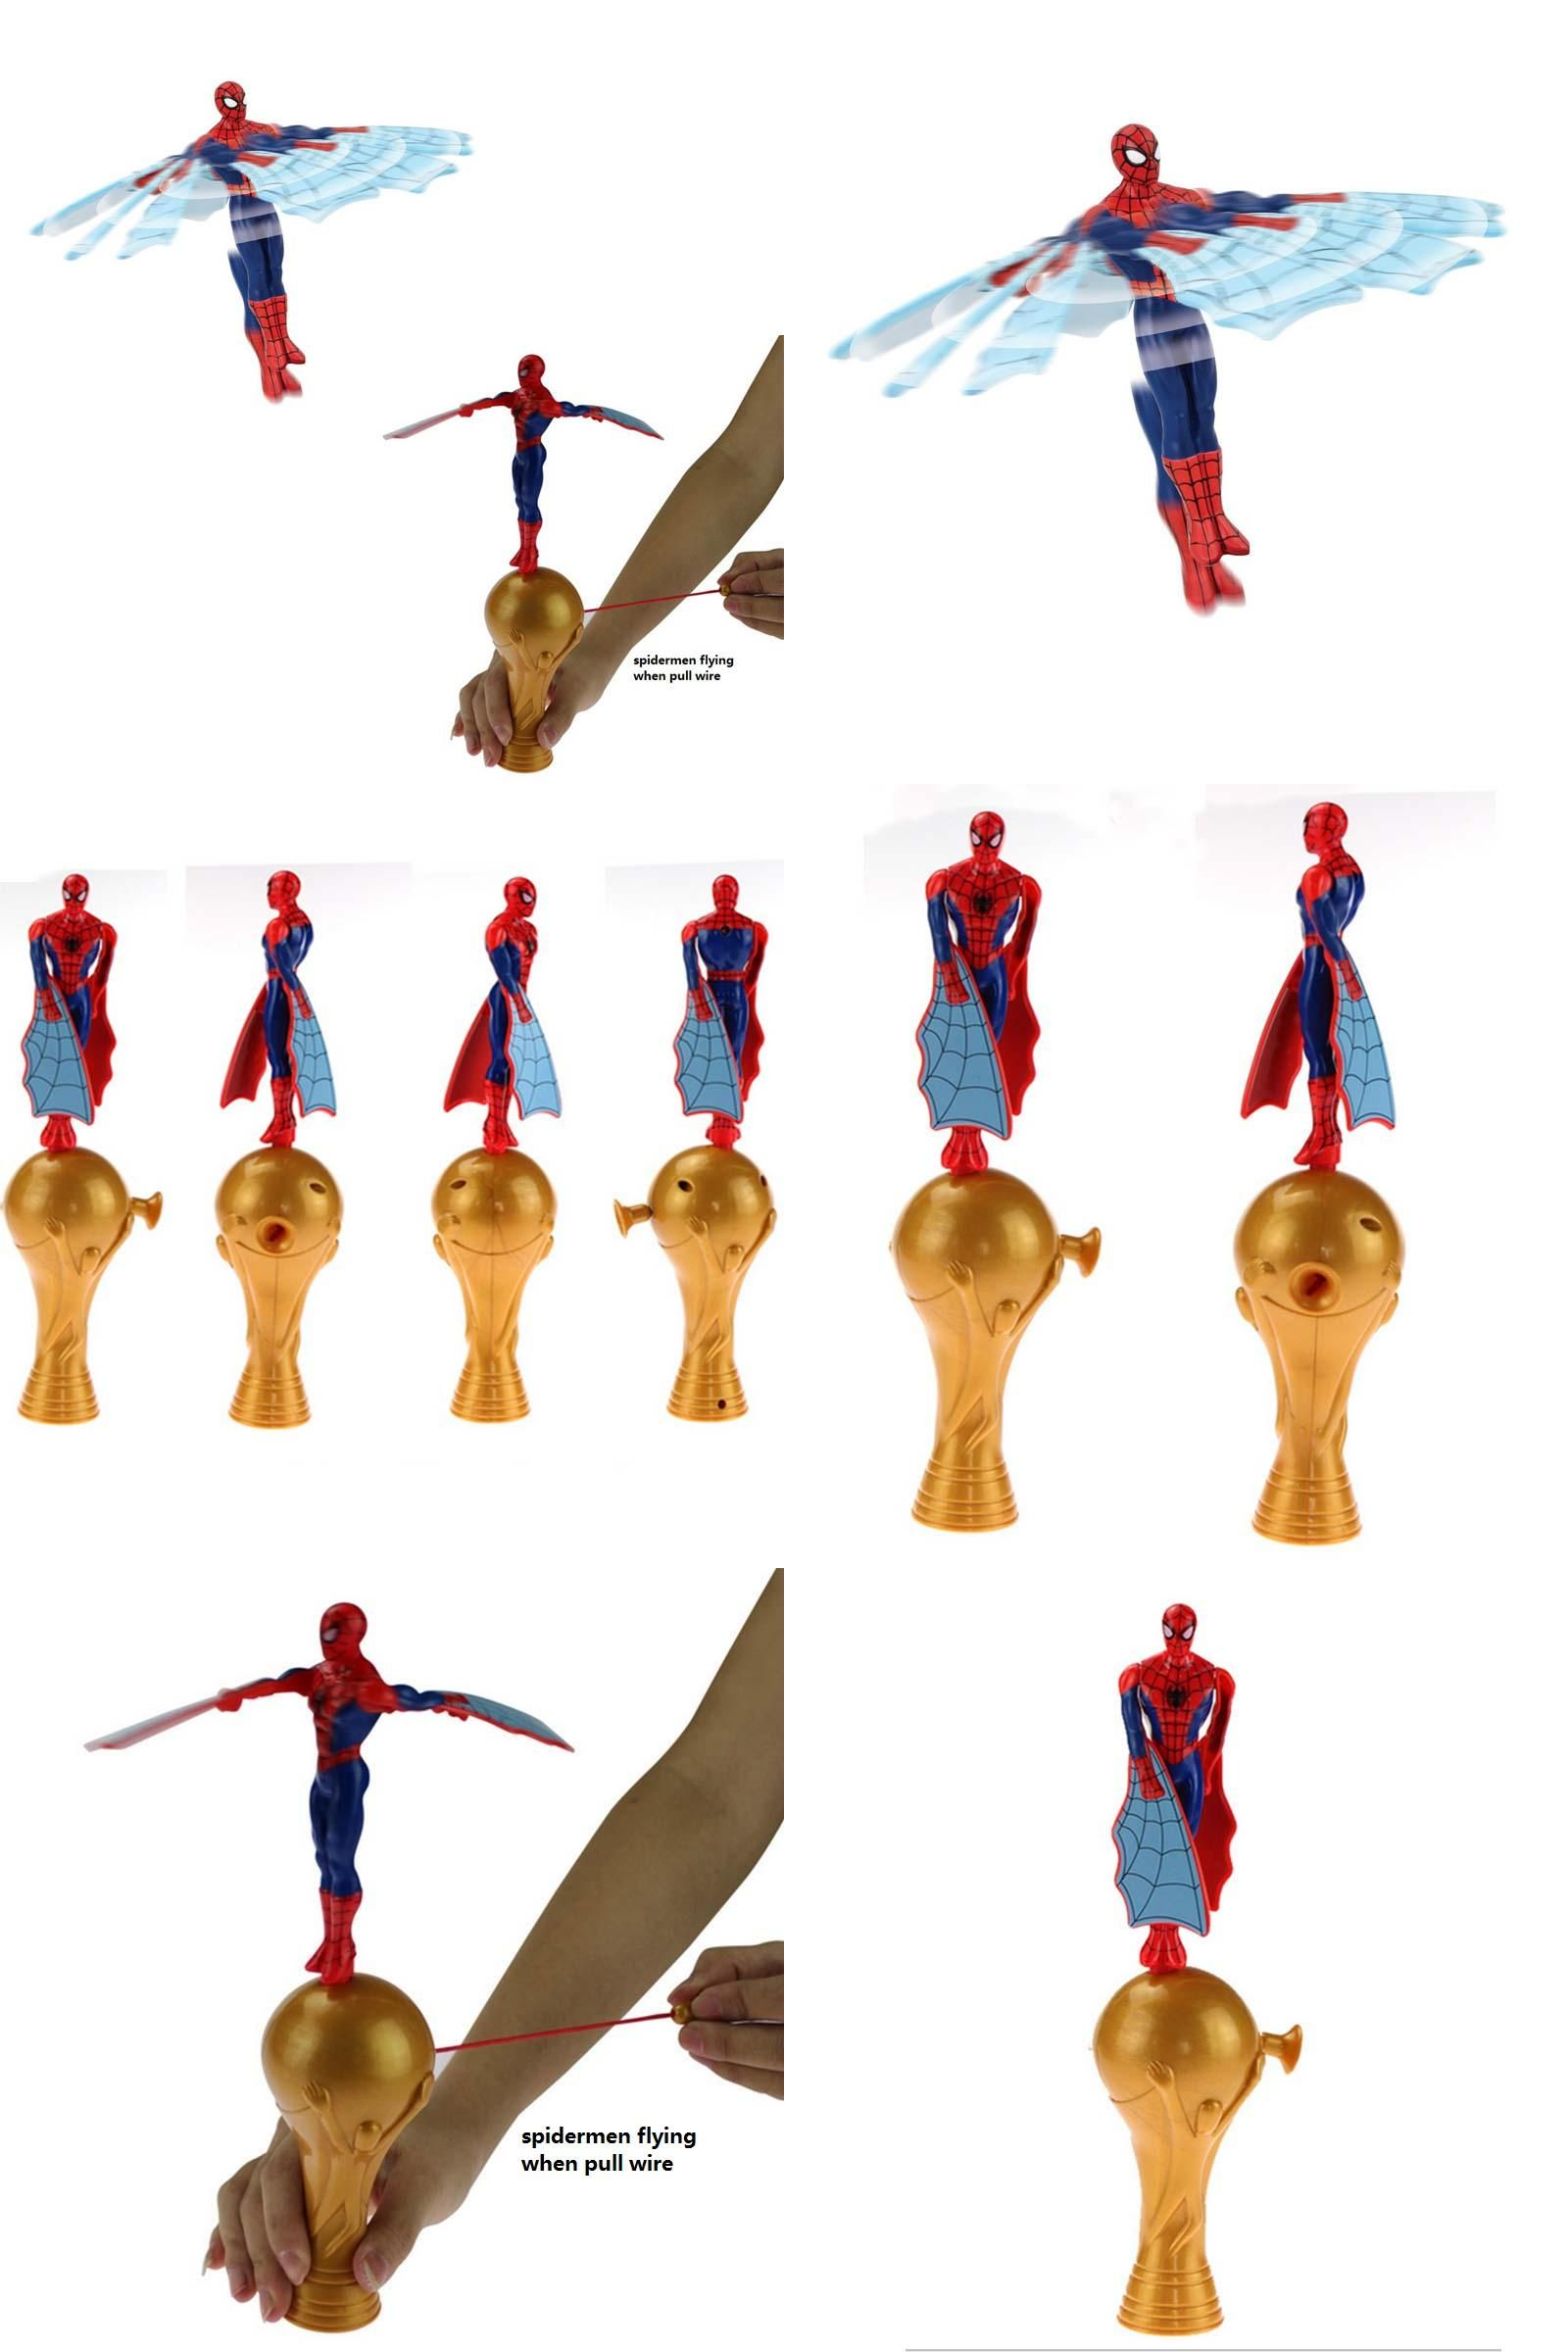 Visit to Buy] 2017 New Amazing Superhero Spiderman Wind Up Flying